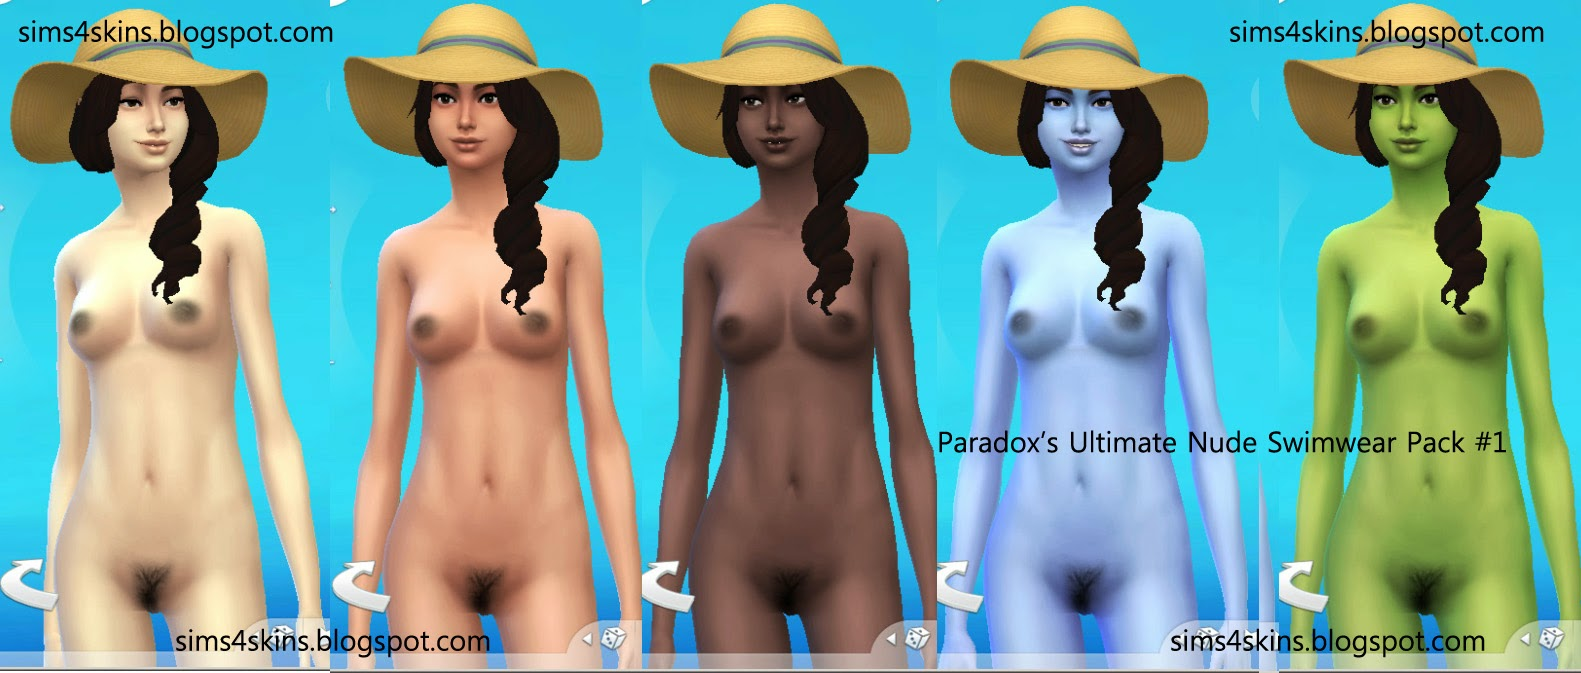 The sims 4 nudes hairy sexy download